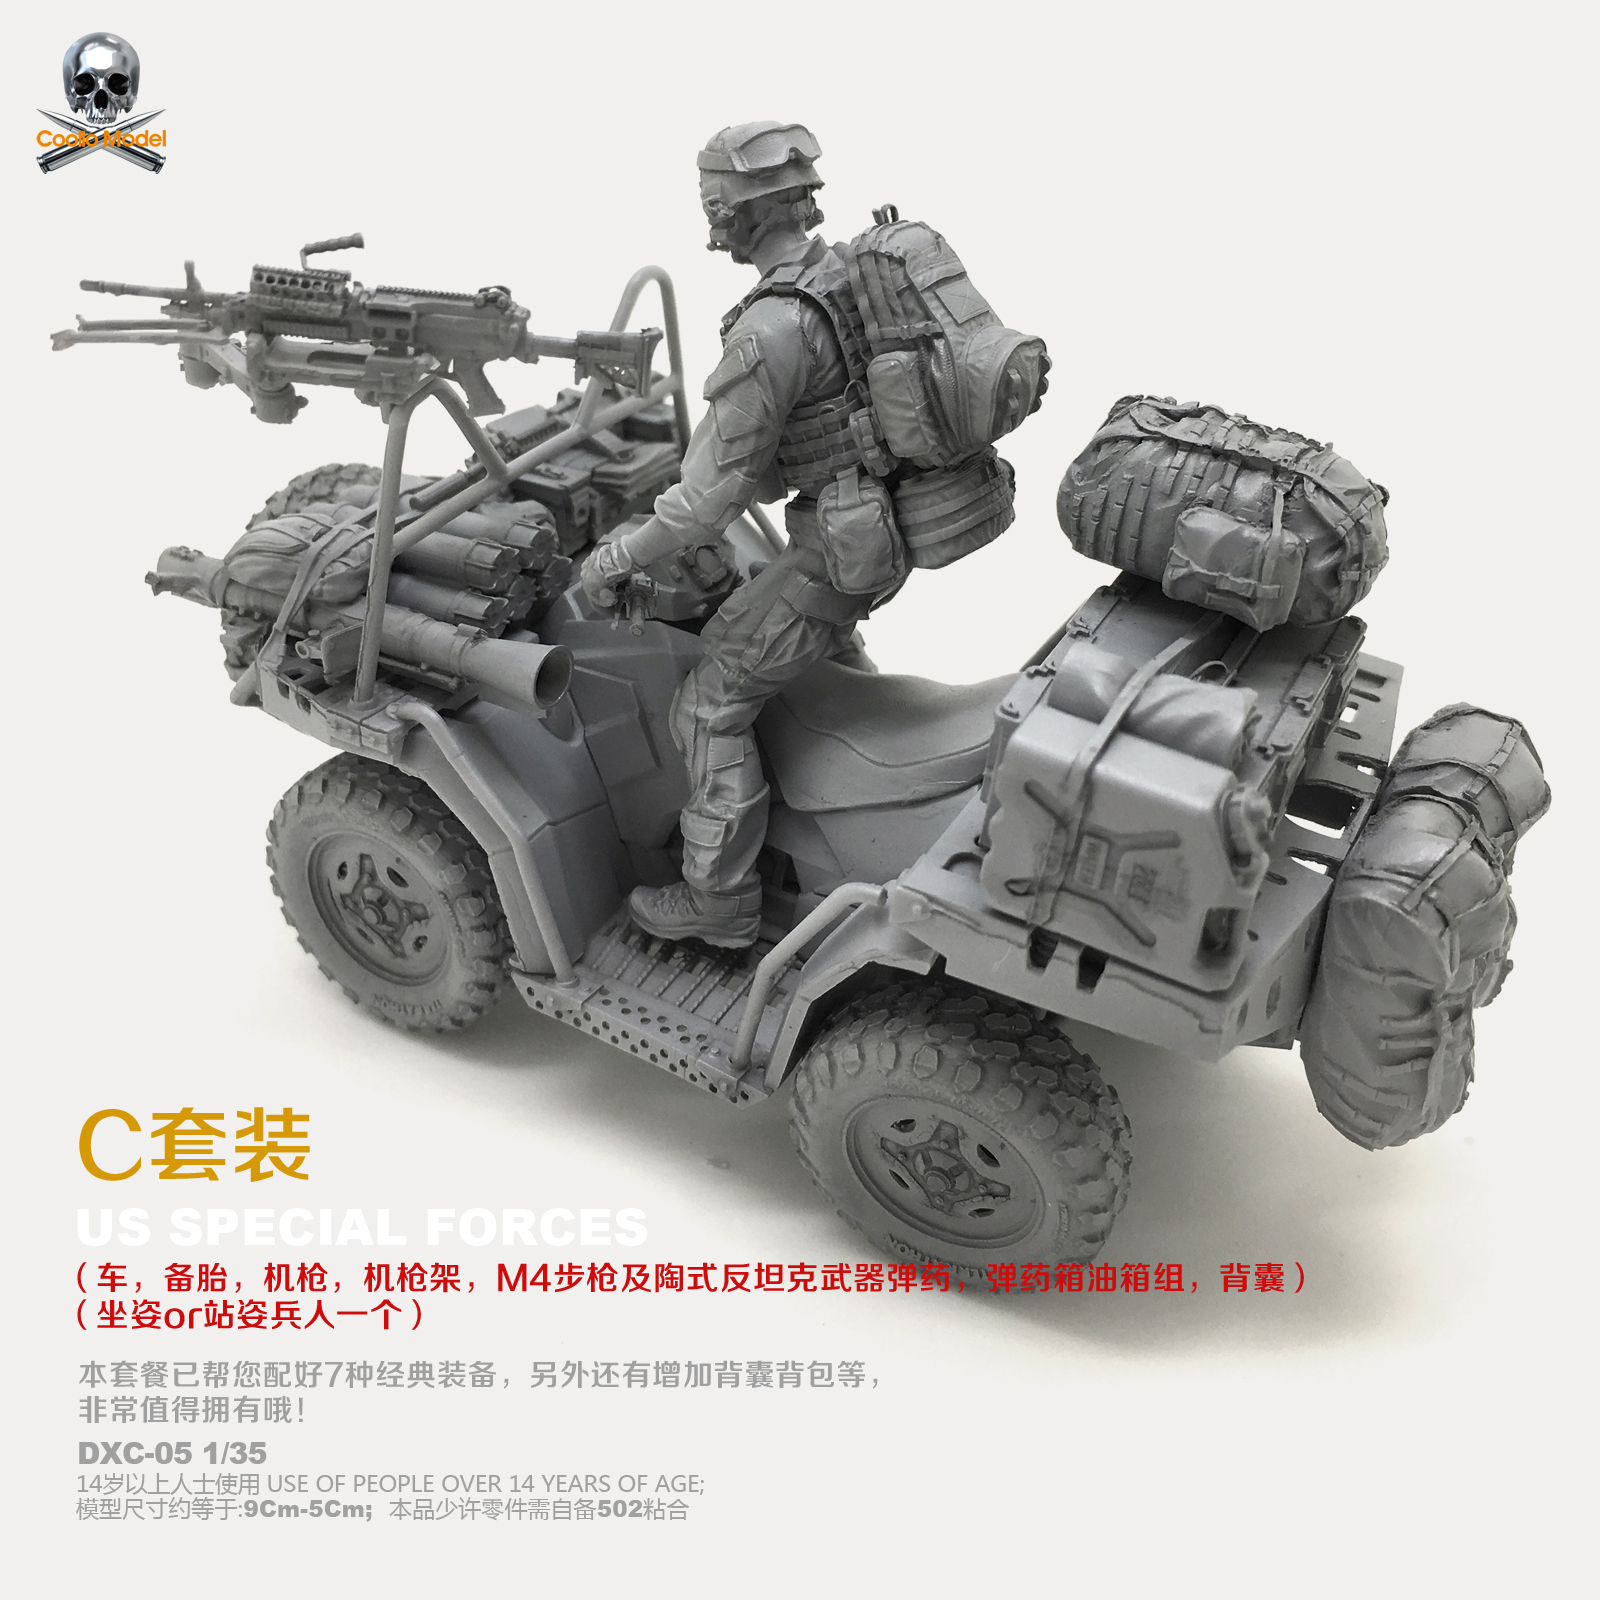 DIY 1/35 Resin Model Dxc 05 for U.S. Navy Seal Soldiers and Terrain Vehicles ( C Suit )